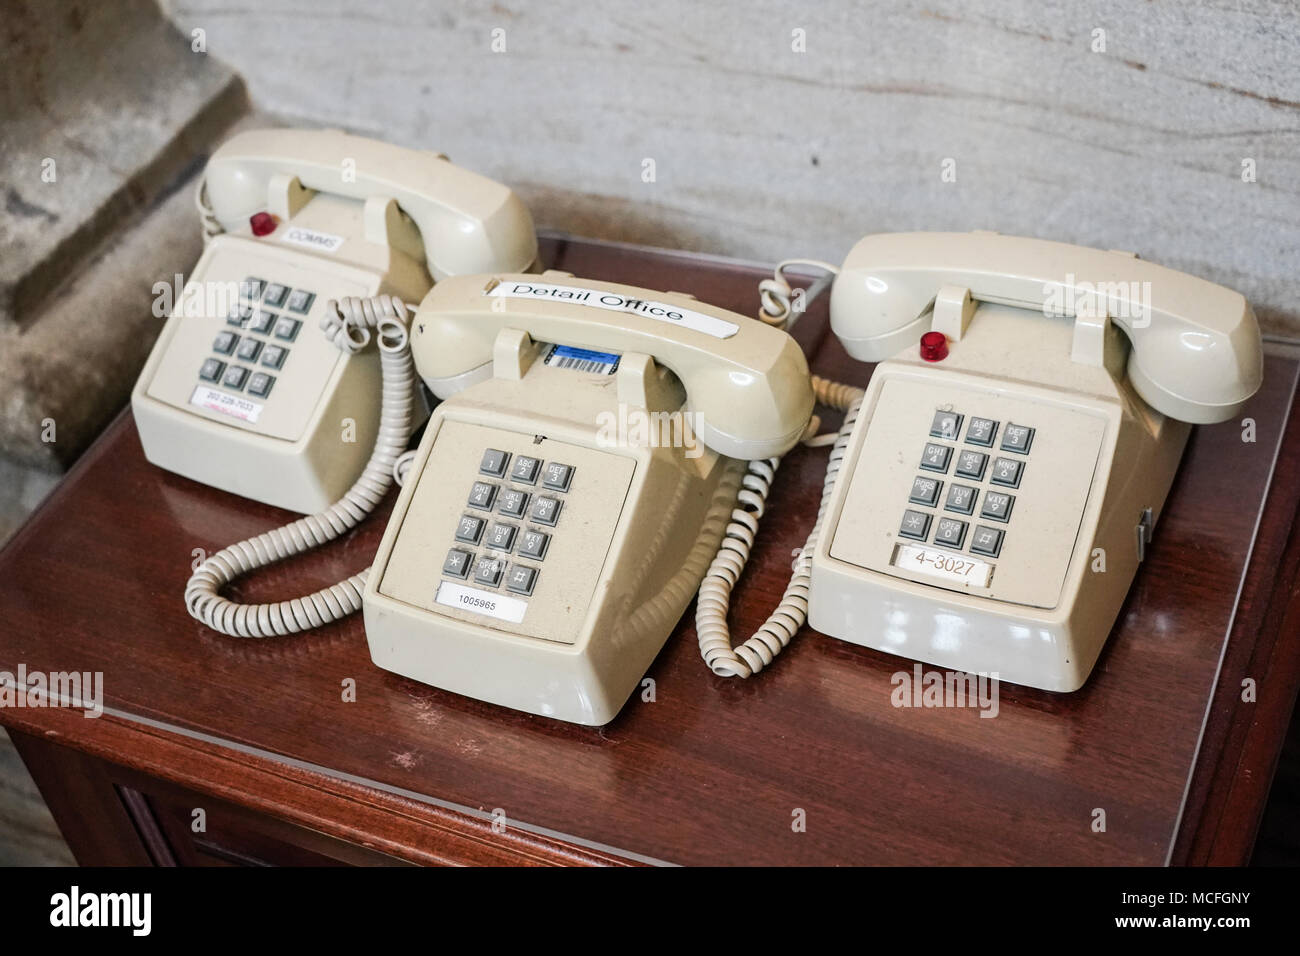 Three old-fashioned telephones in the Capitol building in Washington DC in the United States. From a series of travel photos in the United States. Pho - Stock Image